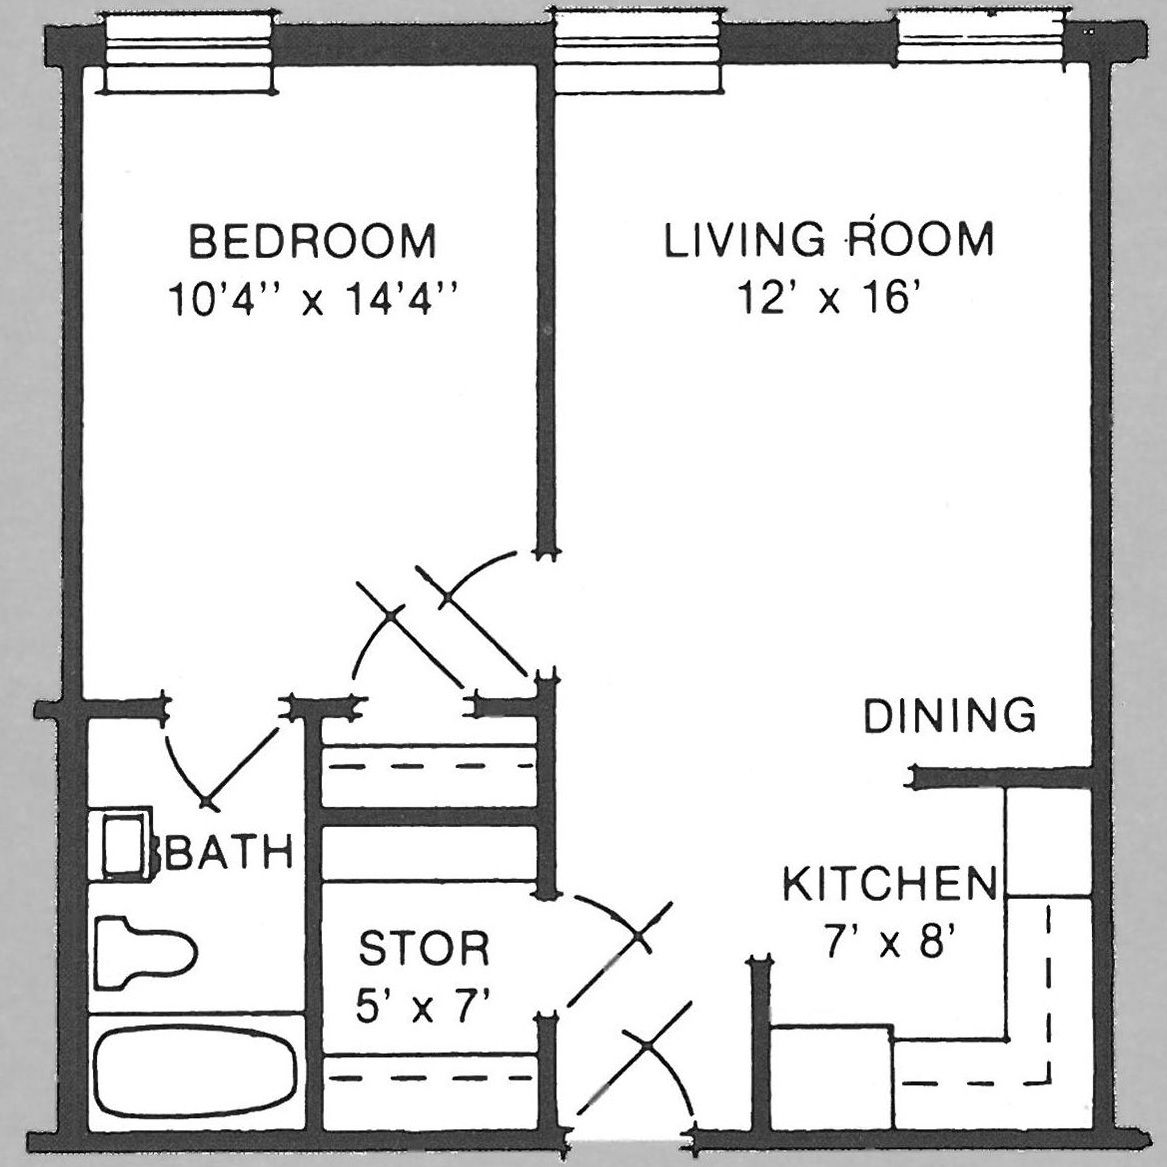 500 Sqft 2 Bedroom Apartment Ideas Square Foot House Plan With Loft Apartment Floor Plans Small House Plans